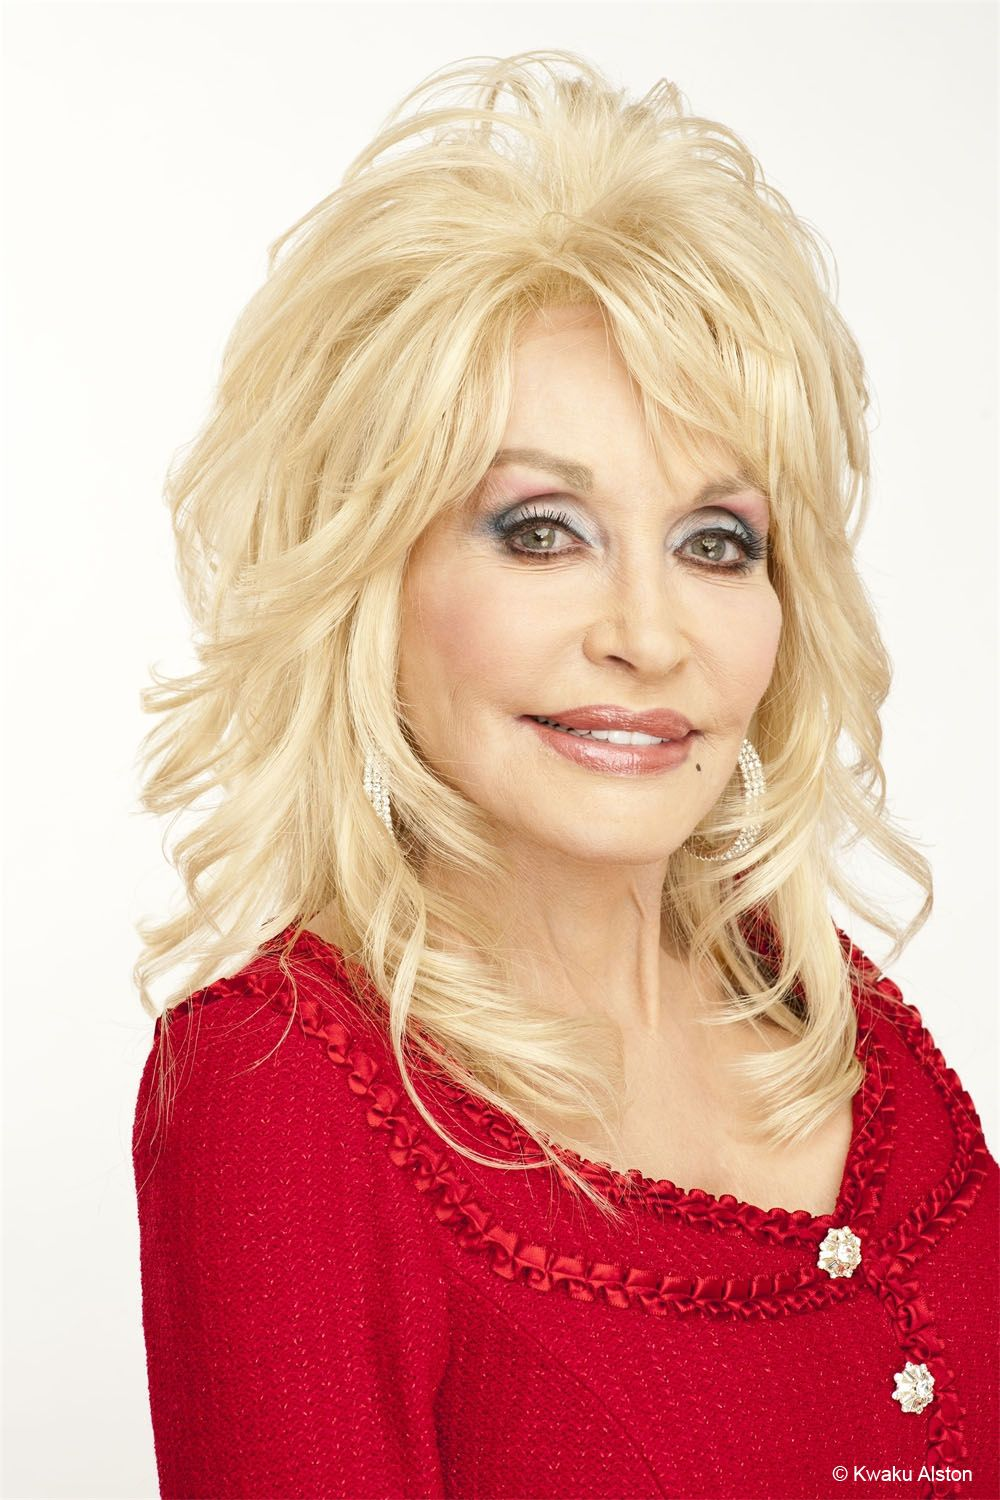 Bing Com Hello World: One Of The Bestknown Country Singers In The World Dolly